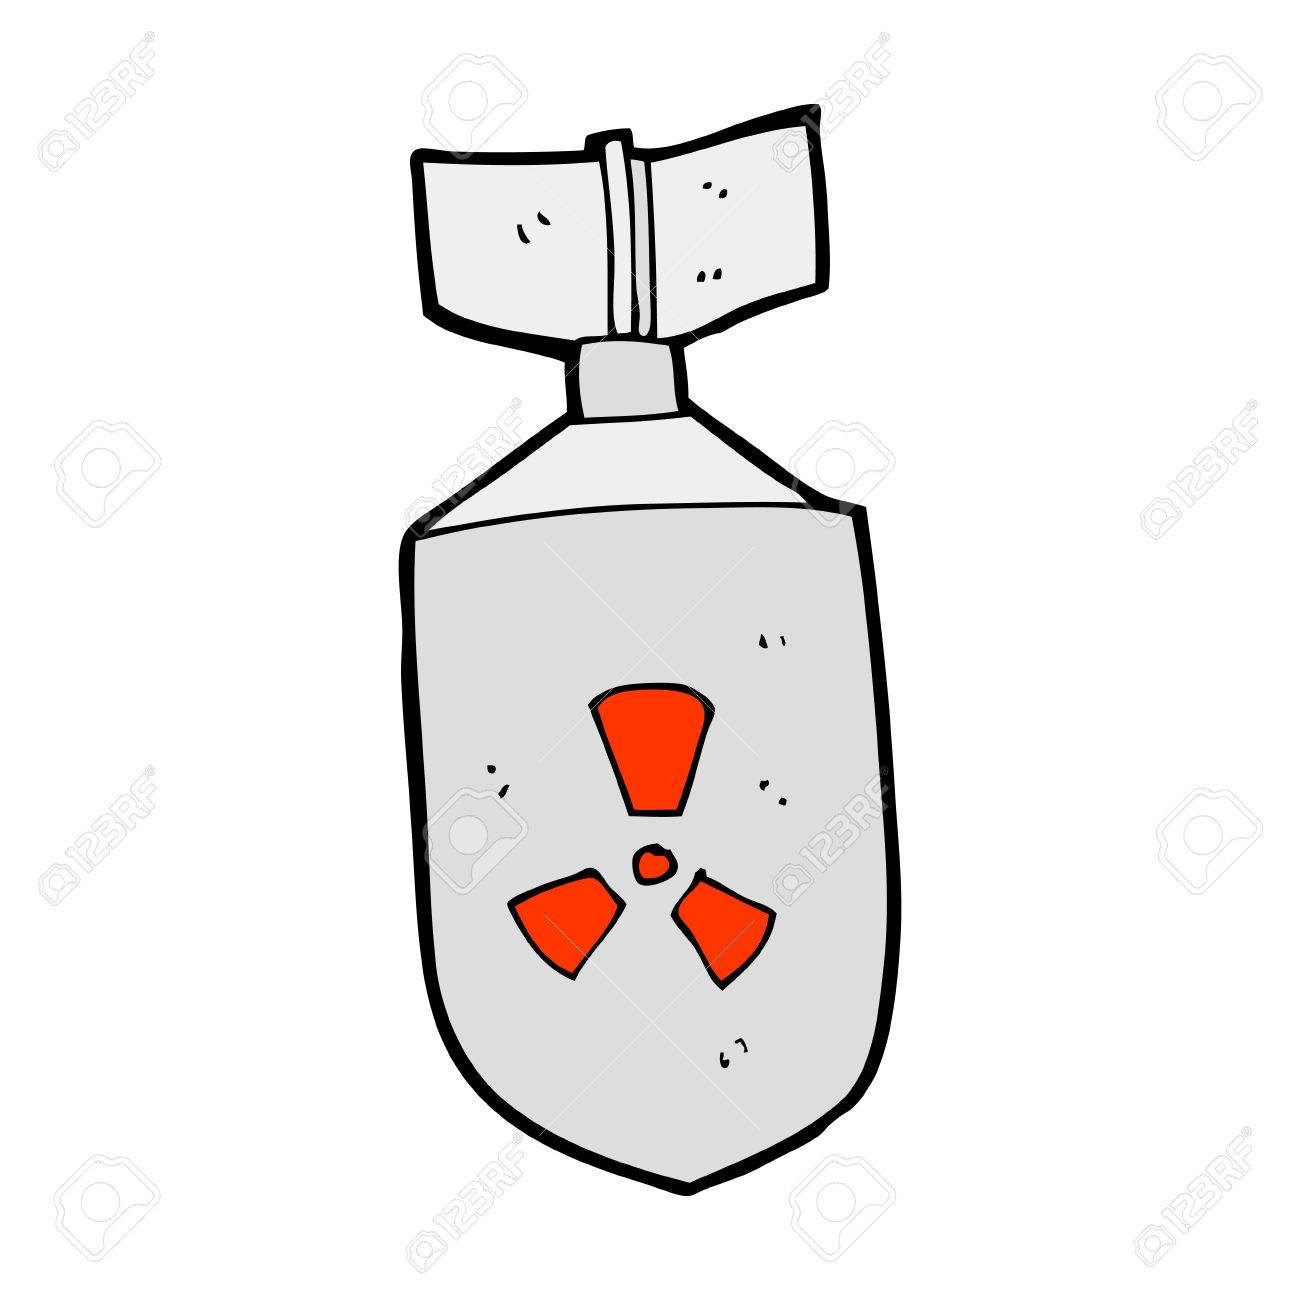 Cartoon Nuclear Bomb Royalty Free Cliparts, Vectors, And Stock ...